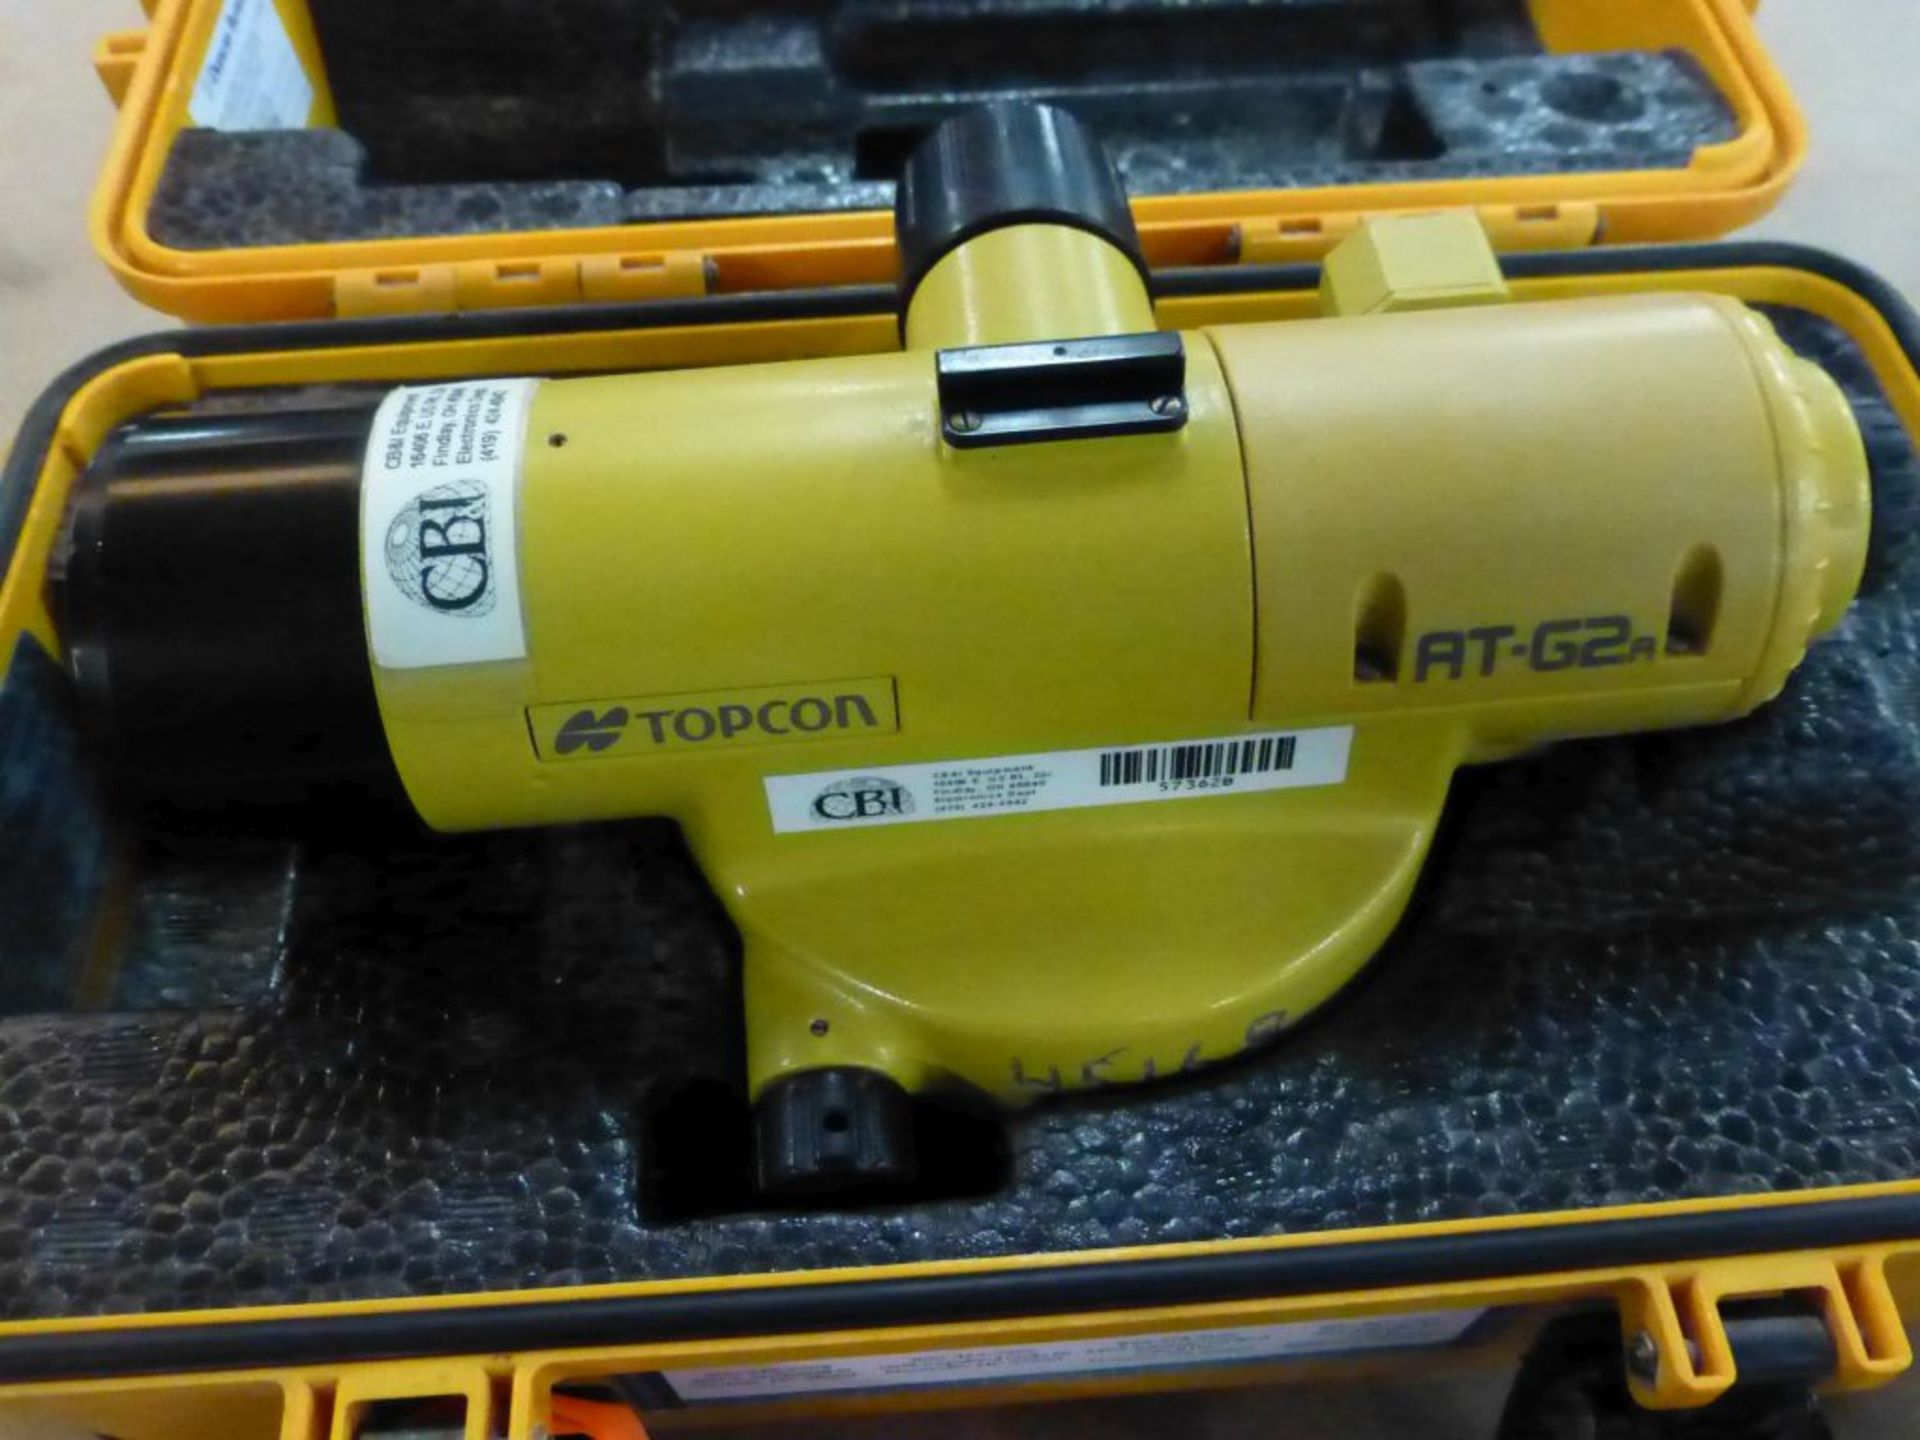 Topcon AT-G2A Auto Level | Case - Image 5 of 10